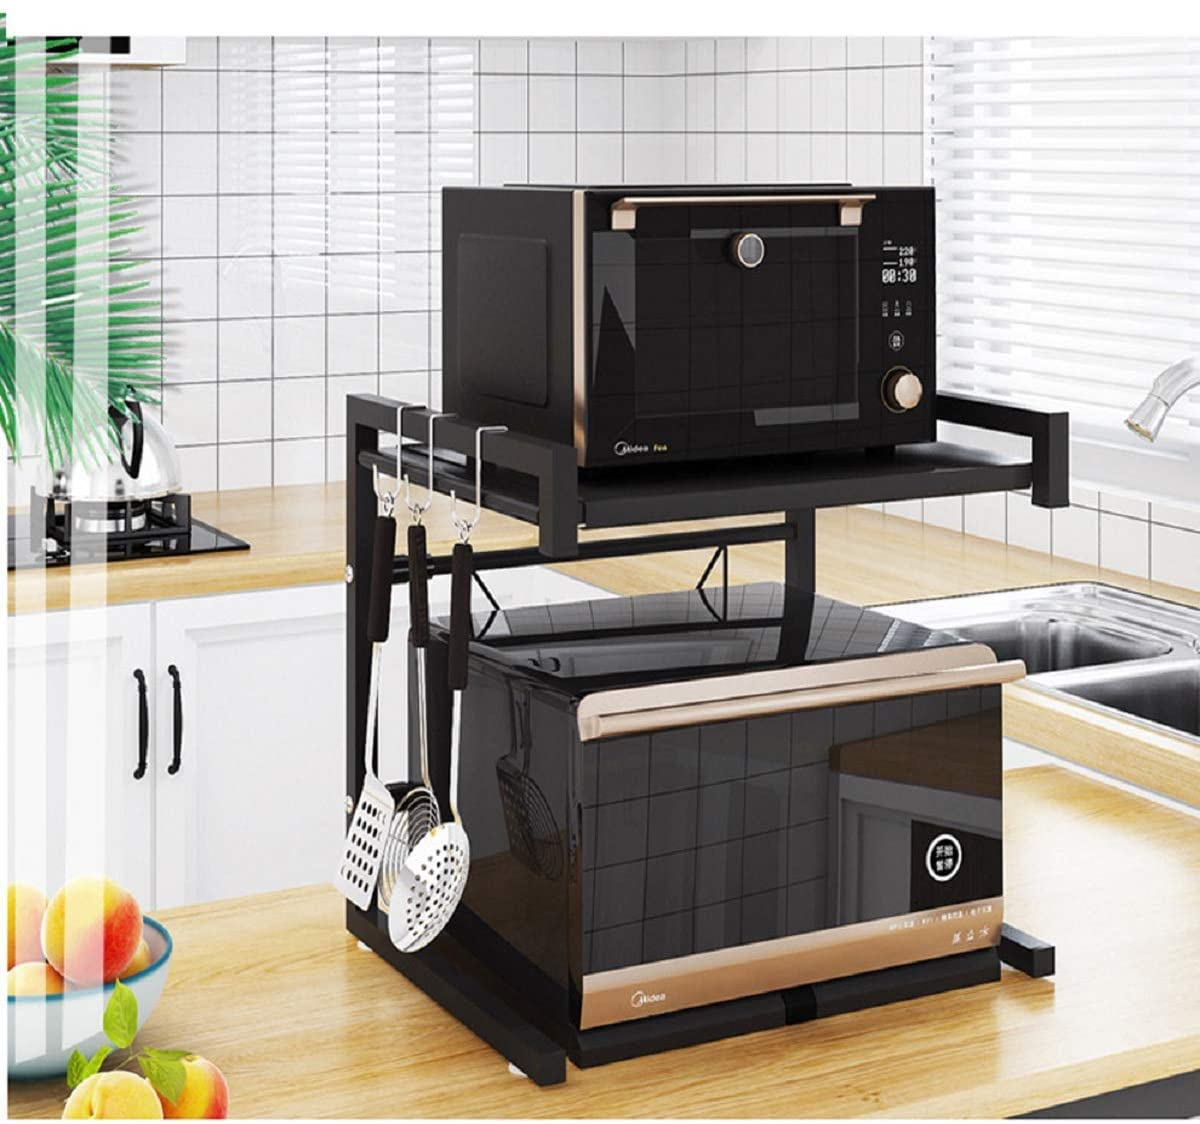 metal microwave oven rack toaster stand shelf expandable kitchen supplies tableware storage counter space saver cabinet organizer spice holder with 3